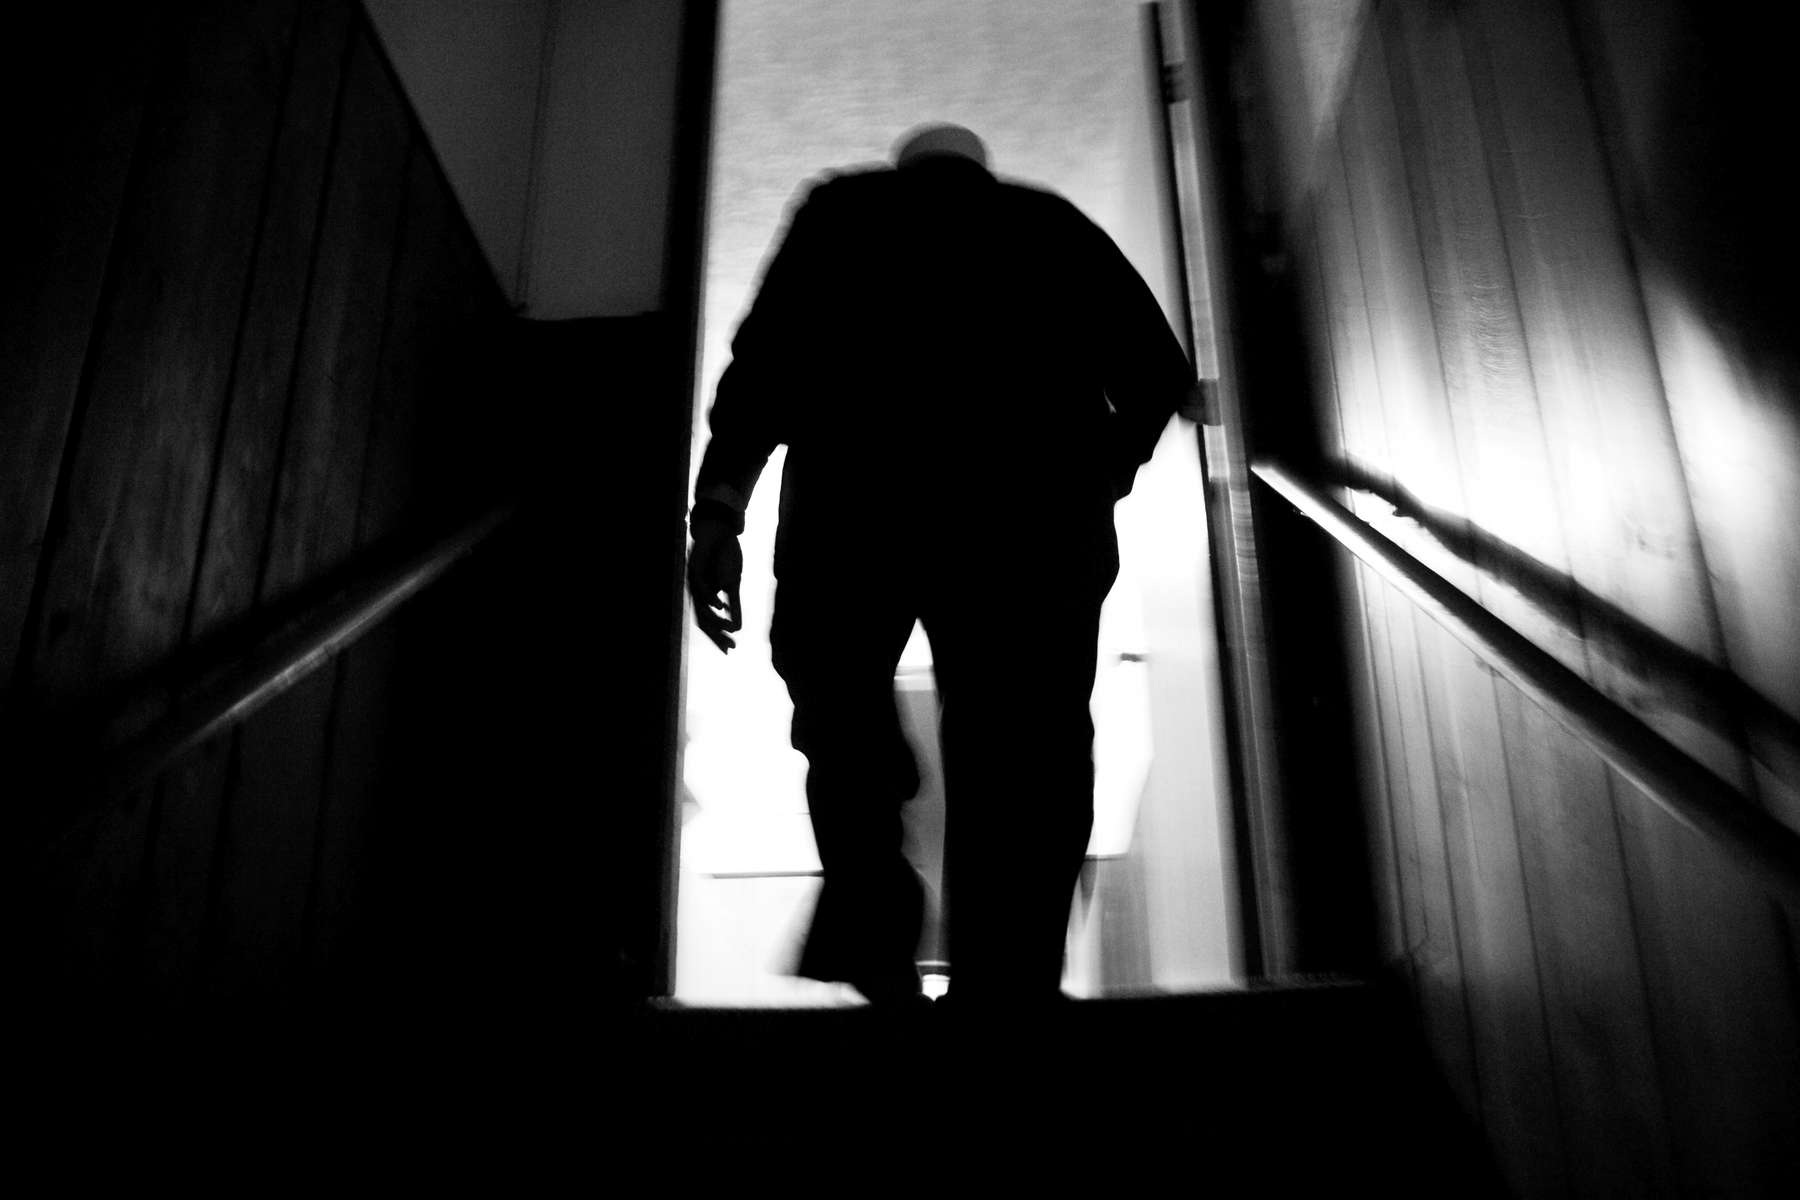 Abdulkadir Sharif ascends the stairs to his apartment above the Minnesota Da'Wah Institute in St. Paul. Sharif left a life of violence, drugs, and crime to work at Da'Wah Institute and give back to his community.